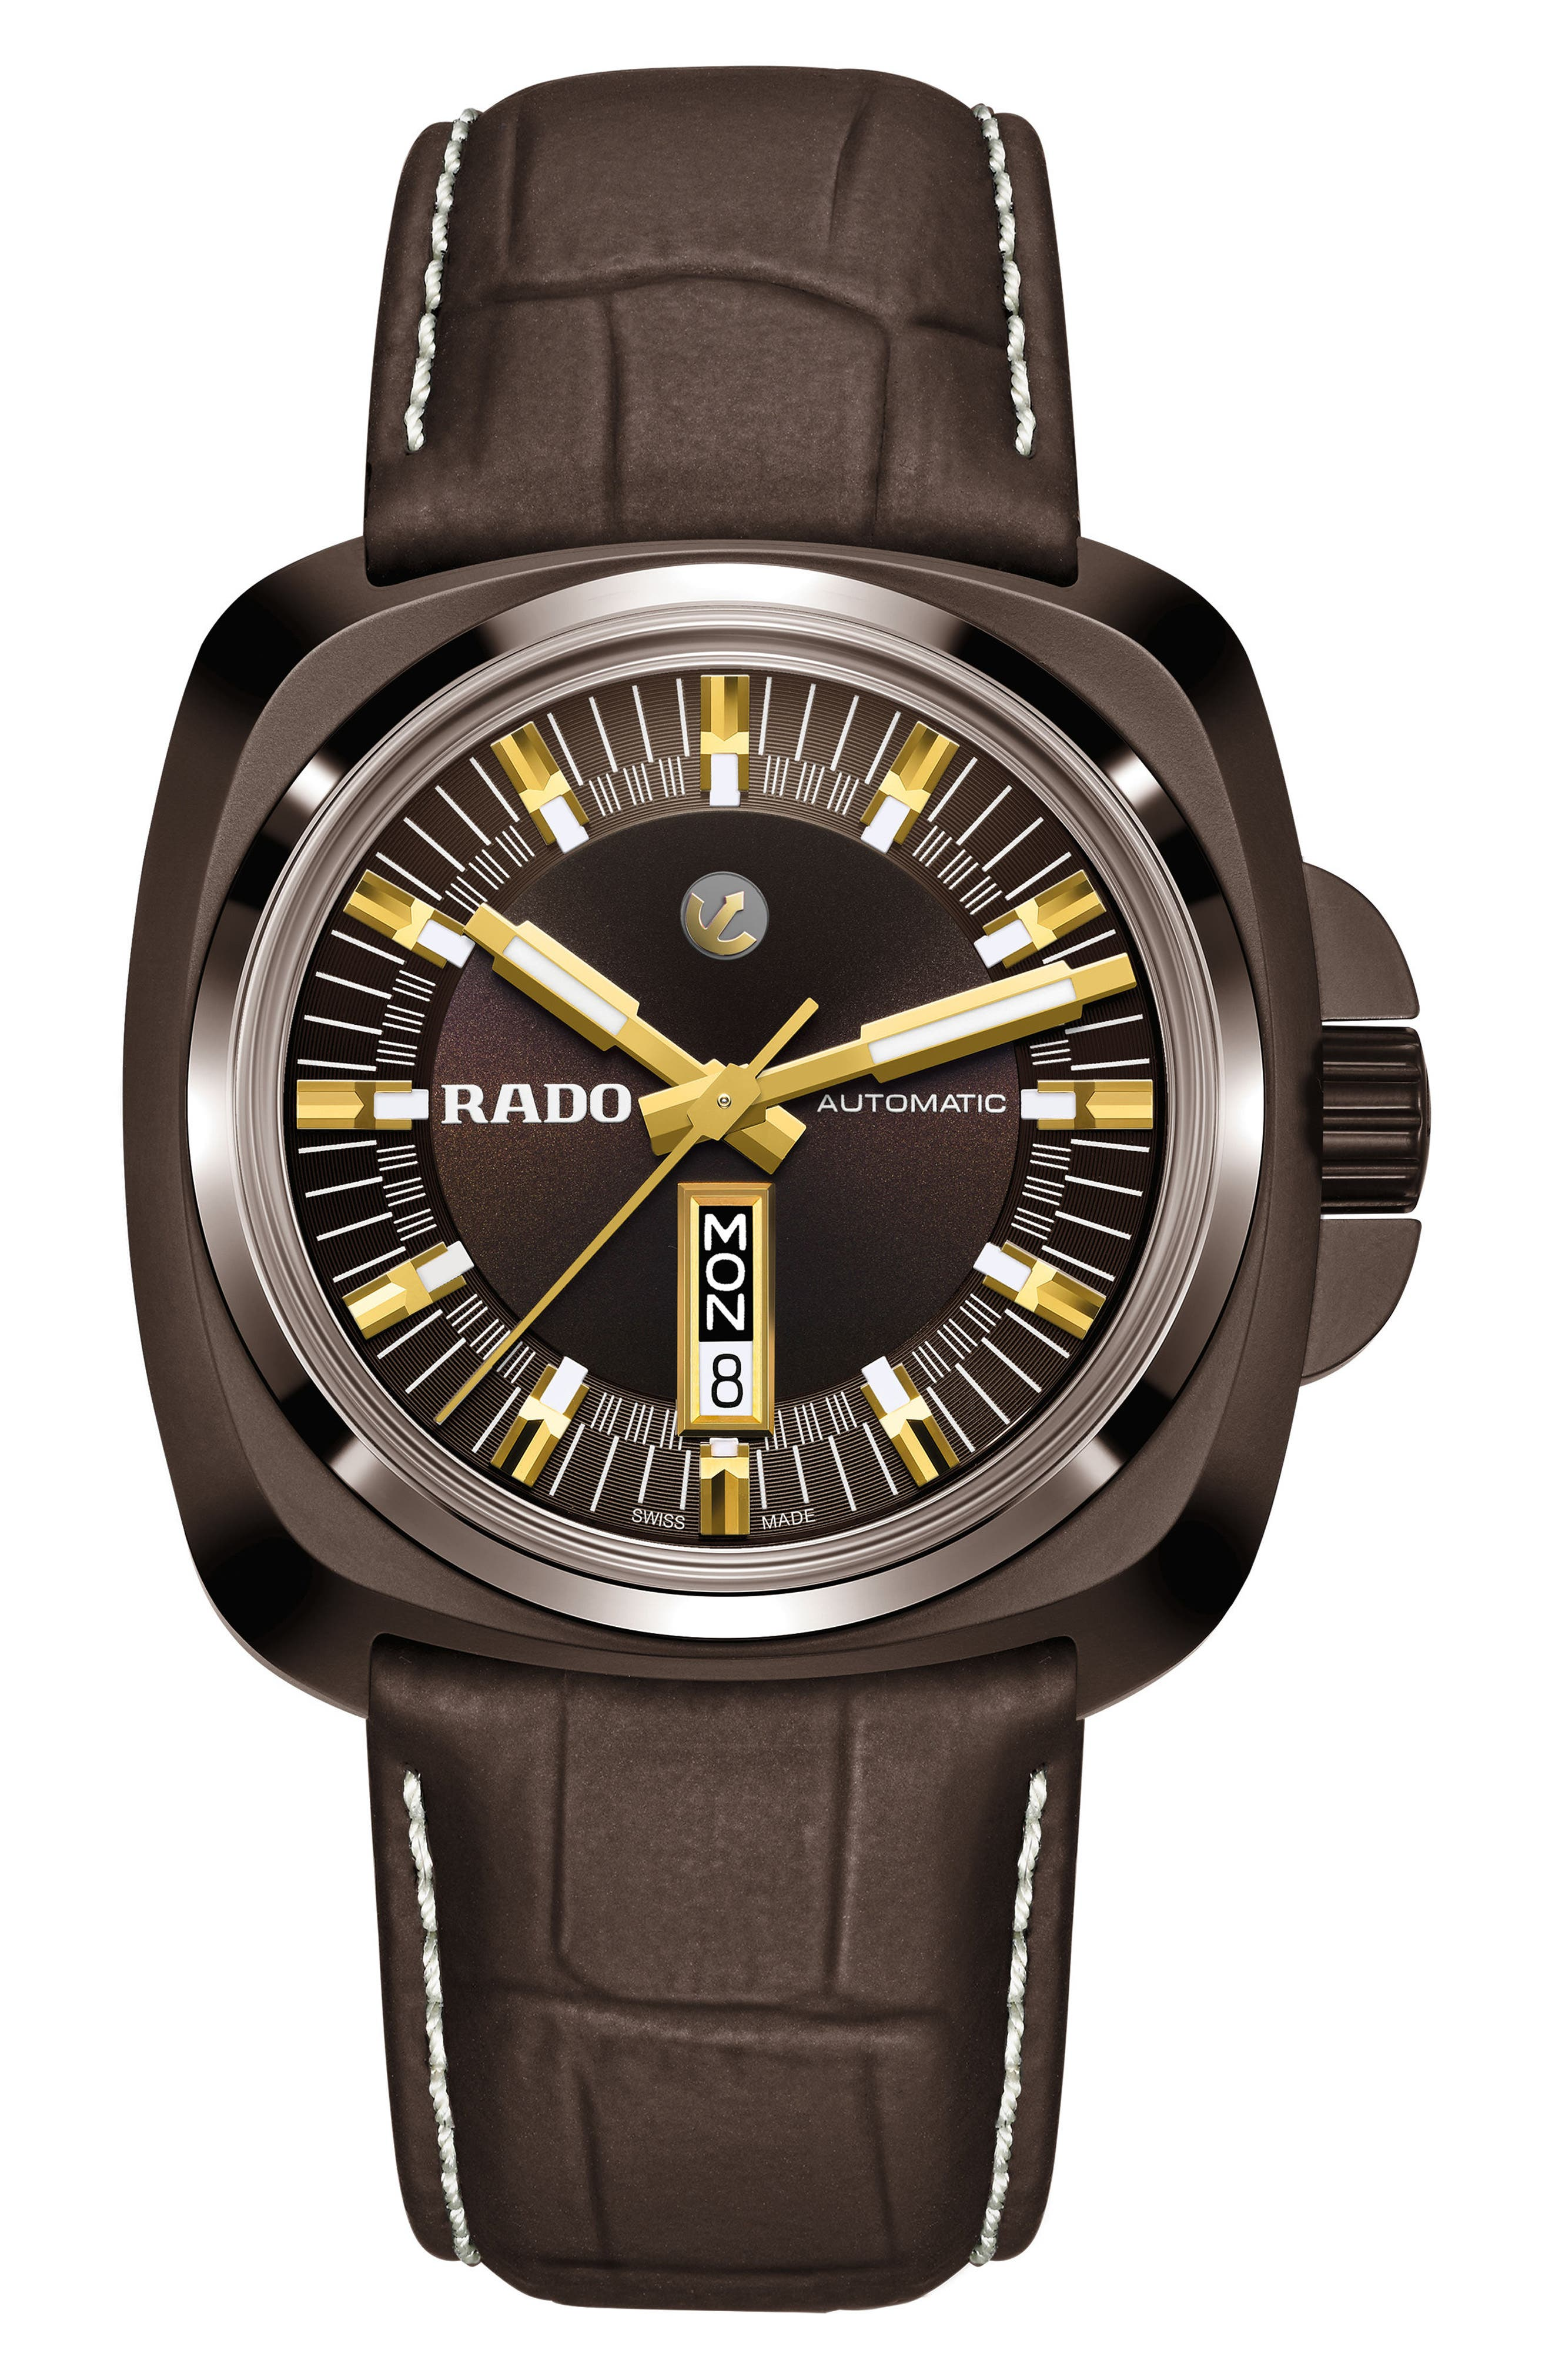 Alternate Image 1 Selected - RADO HyperChrome 1616 Automatic Leather Strap Watch, 46mm